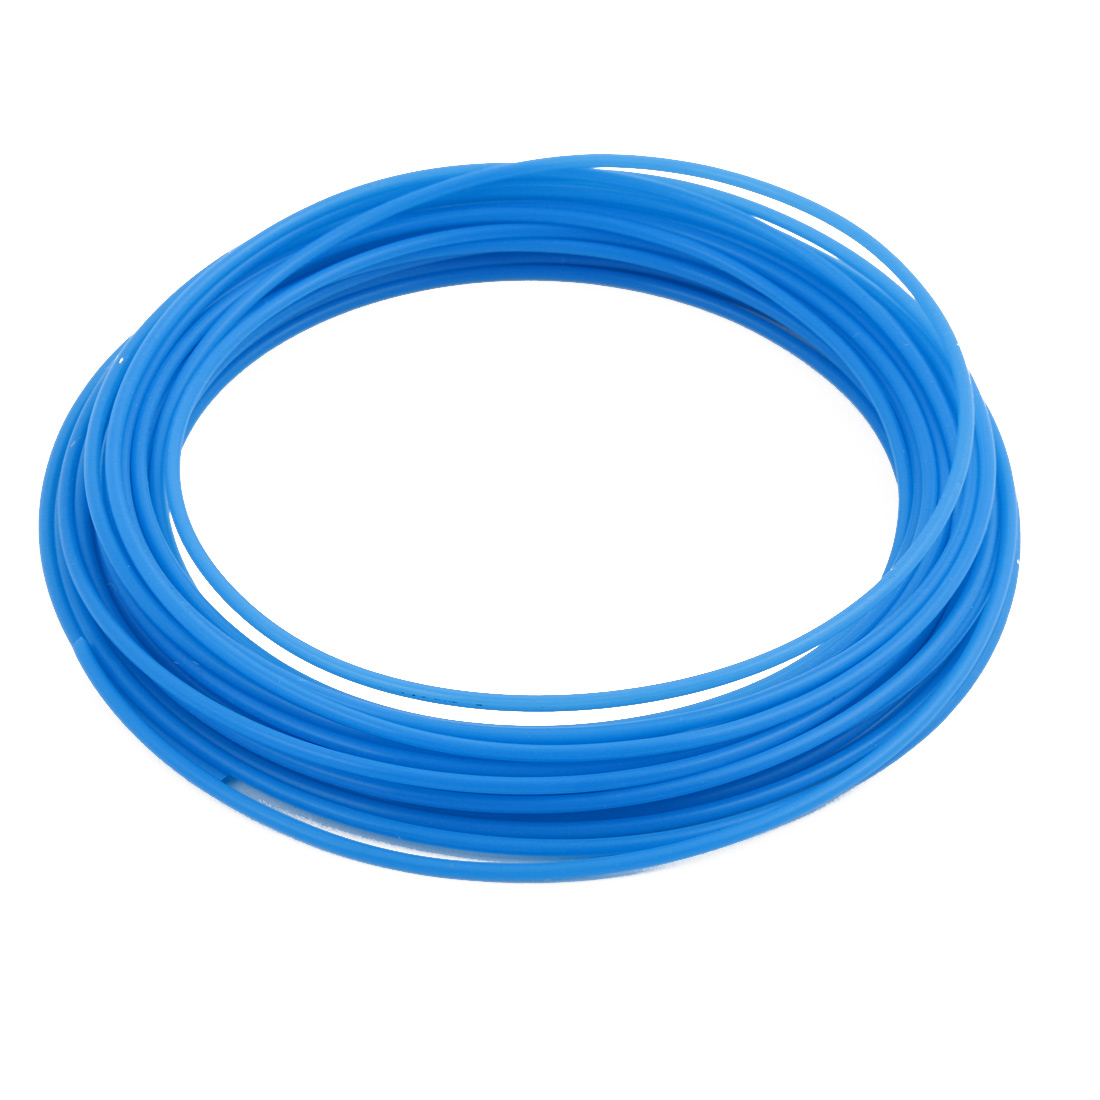 1.93mmx2.33mm PTFE Resistant High Temperature Blue Tubing 10 Meters 32.8Ft